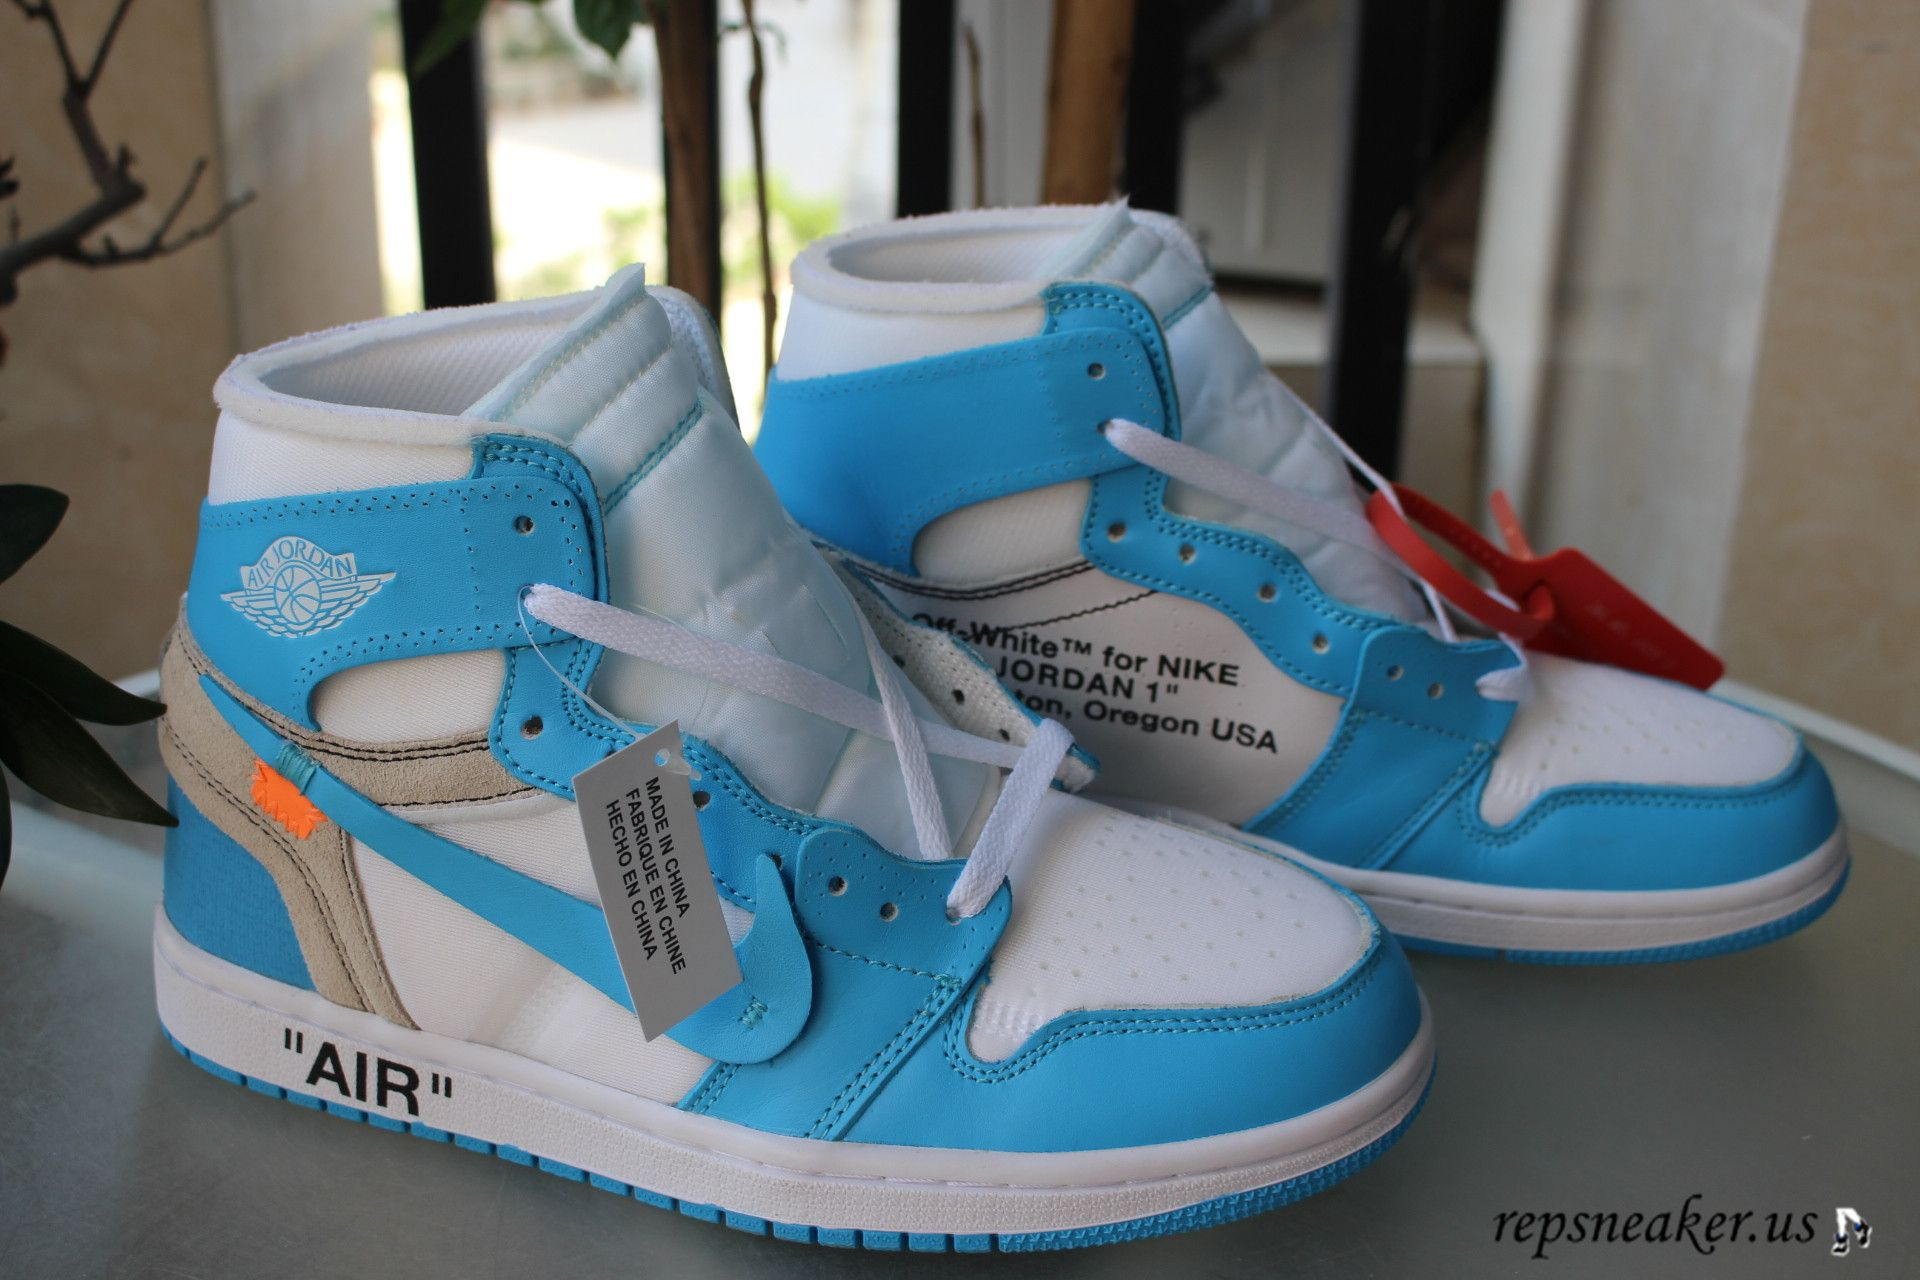 541f3e5c70c6 Authentic Off-White x Air Jordan 1 Retro OG High UNC White Blue Contact me   Email repsneakeryeezy gmail.com Whatsapp +8618087436133 Kik repsneaker ...